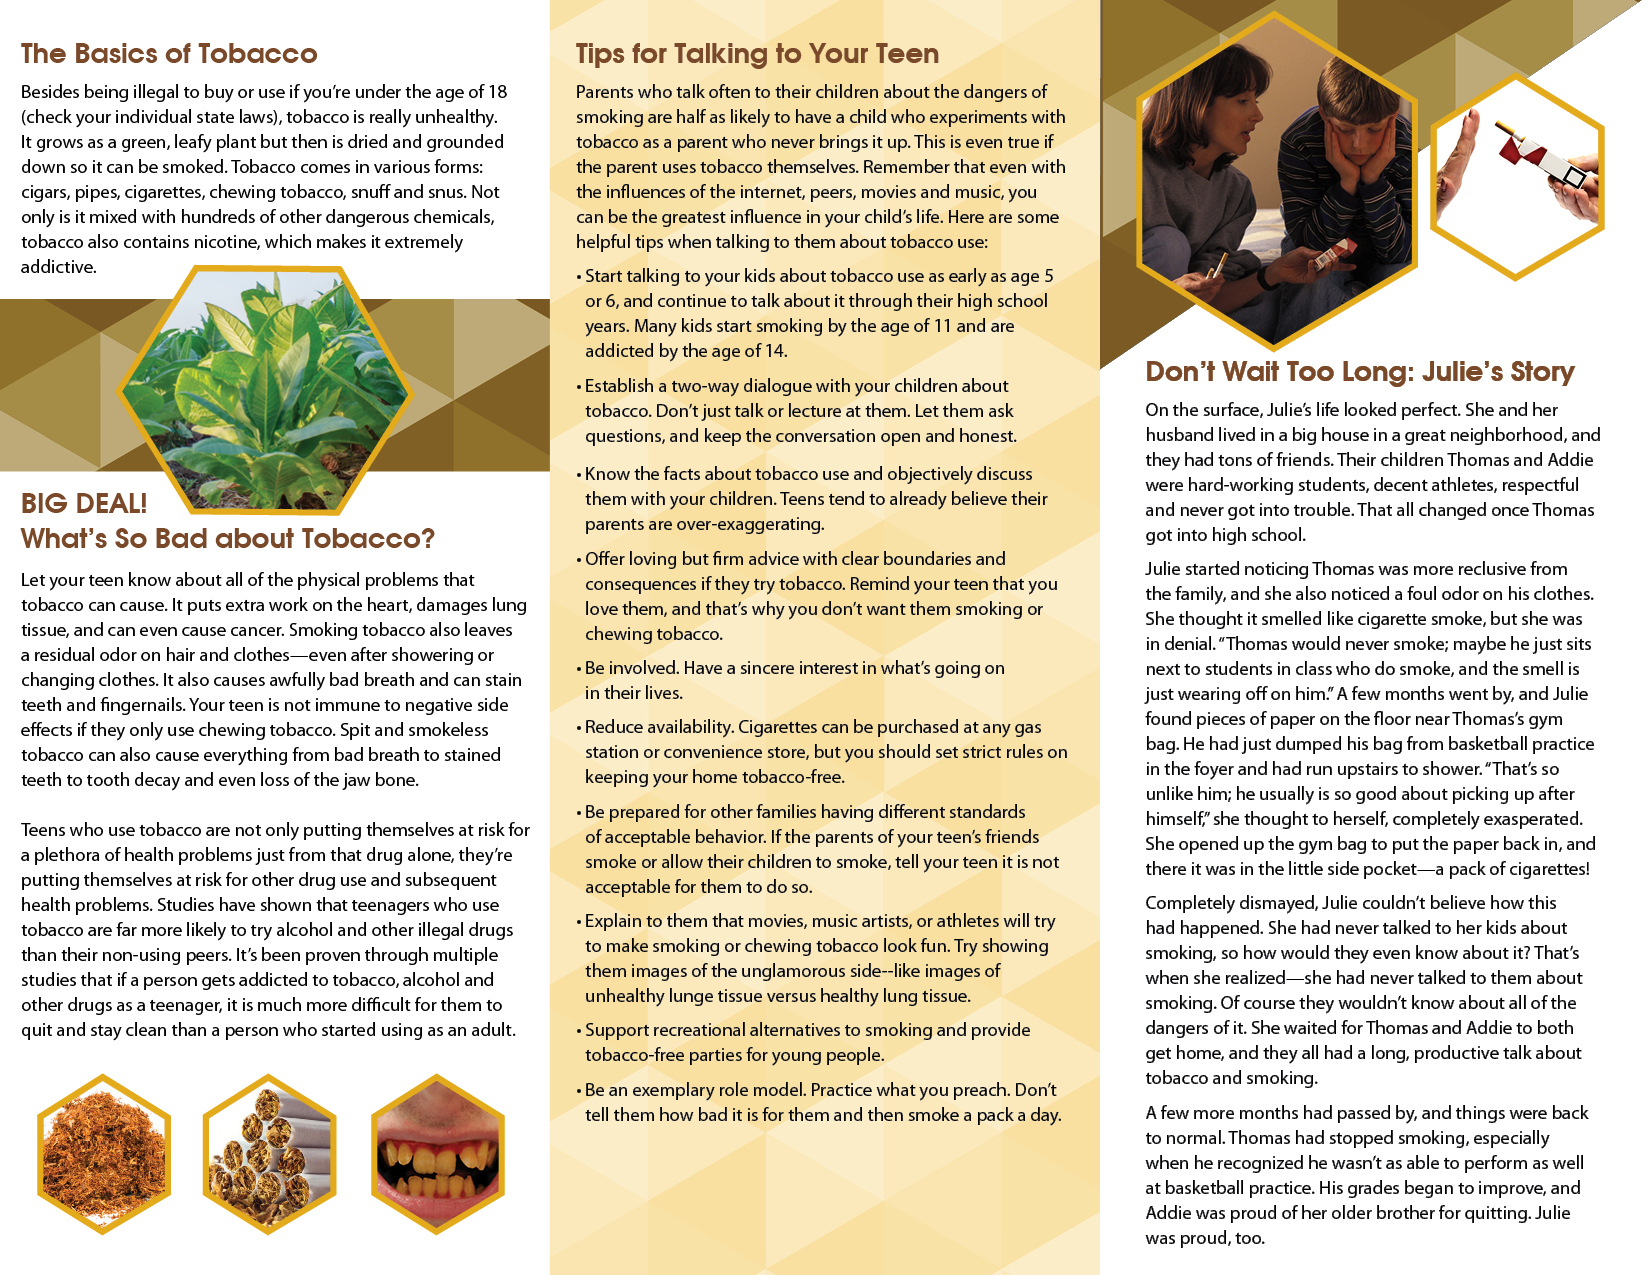 a description of cigarettes addiction and product dangers Product description menthol cigarettes pamphlet explains the dangers of menthol cigarettes the pamphlet identifies the physical and mental components of nicotine addiction and are encouraged to stick with quitting additional information.